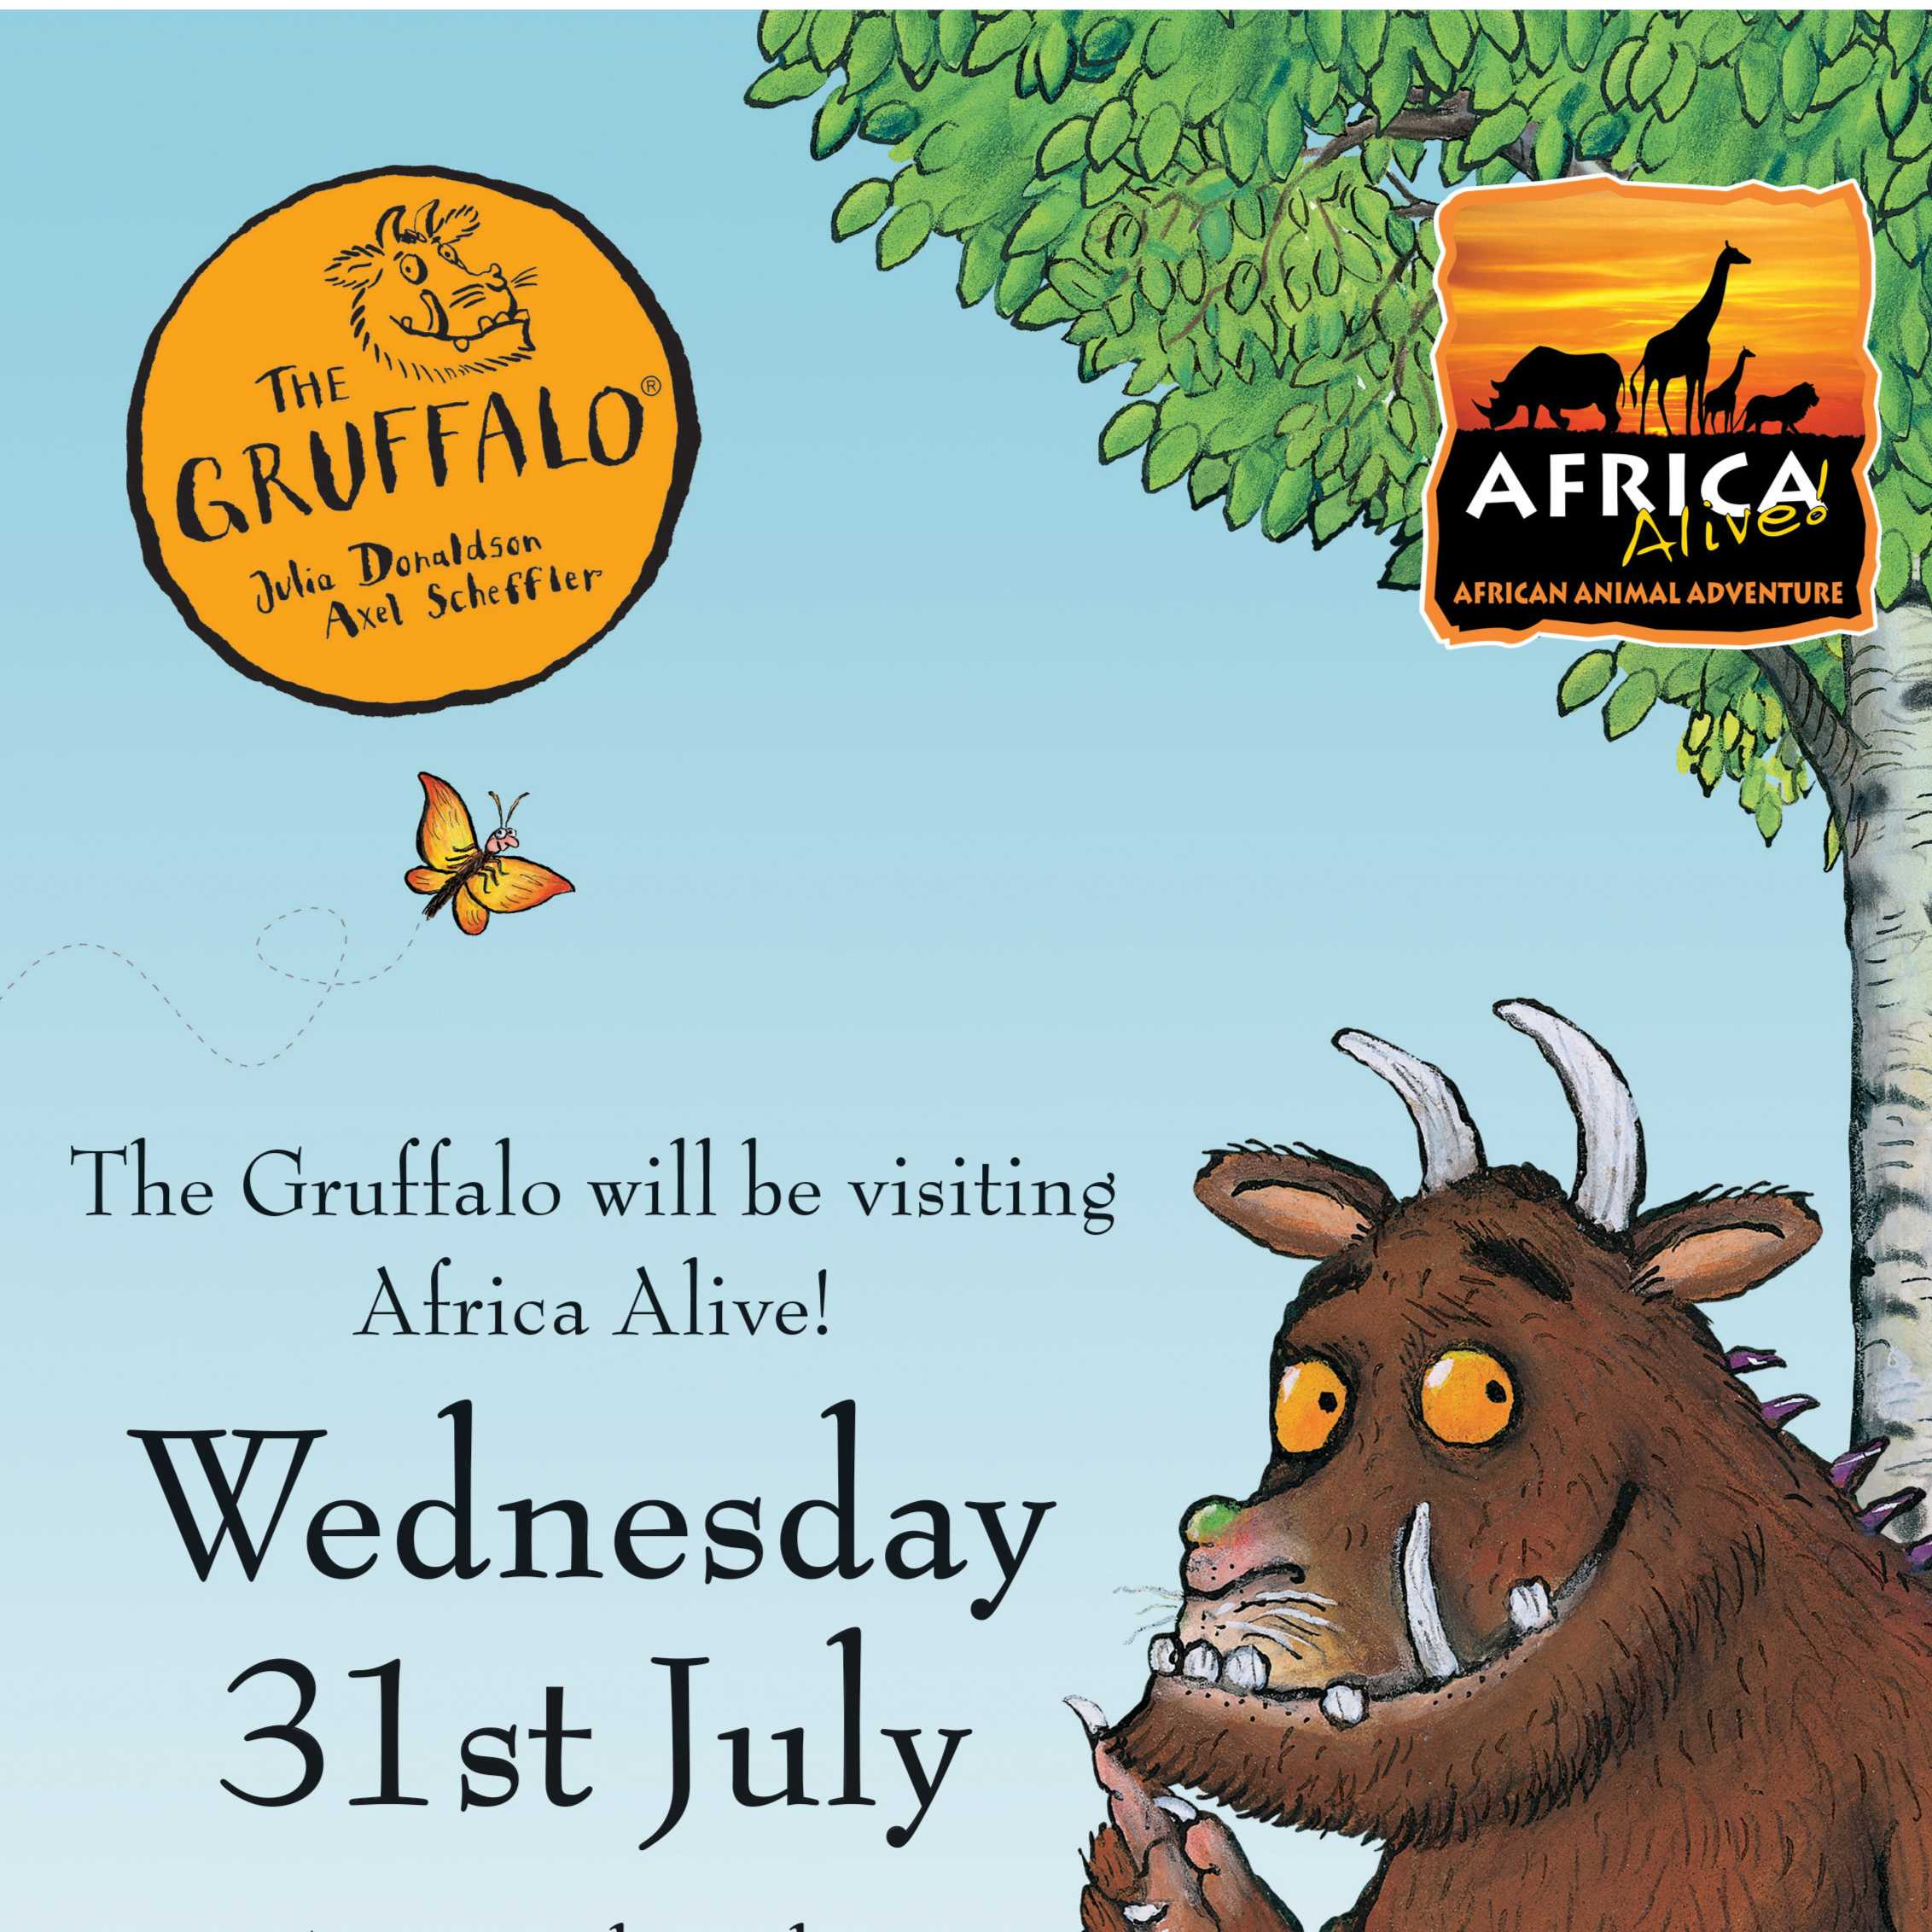 Gruffalo comes to Africa Alive! Image